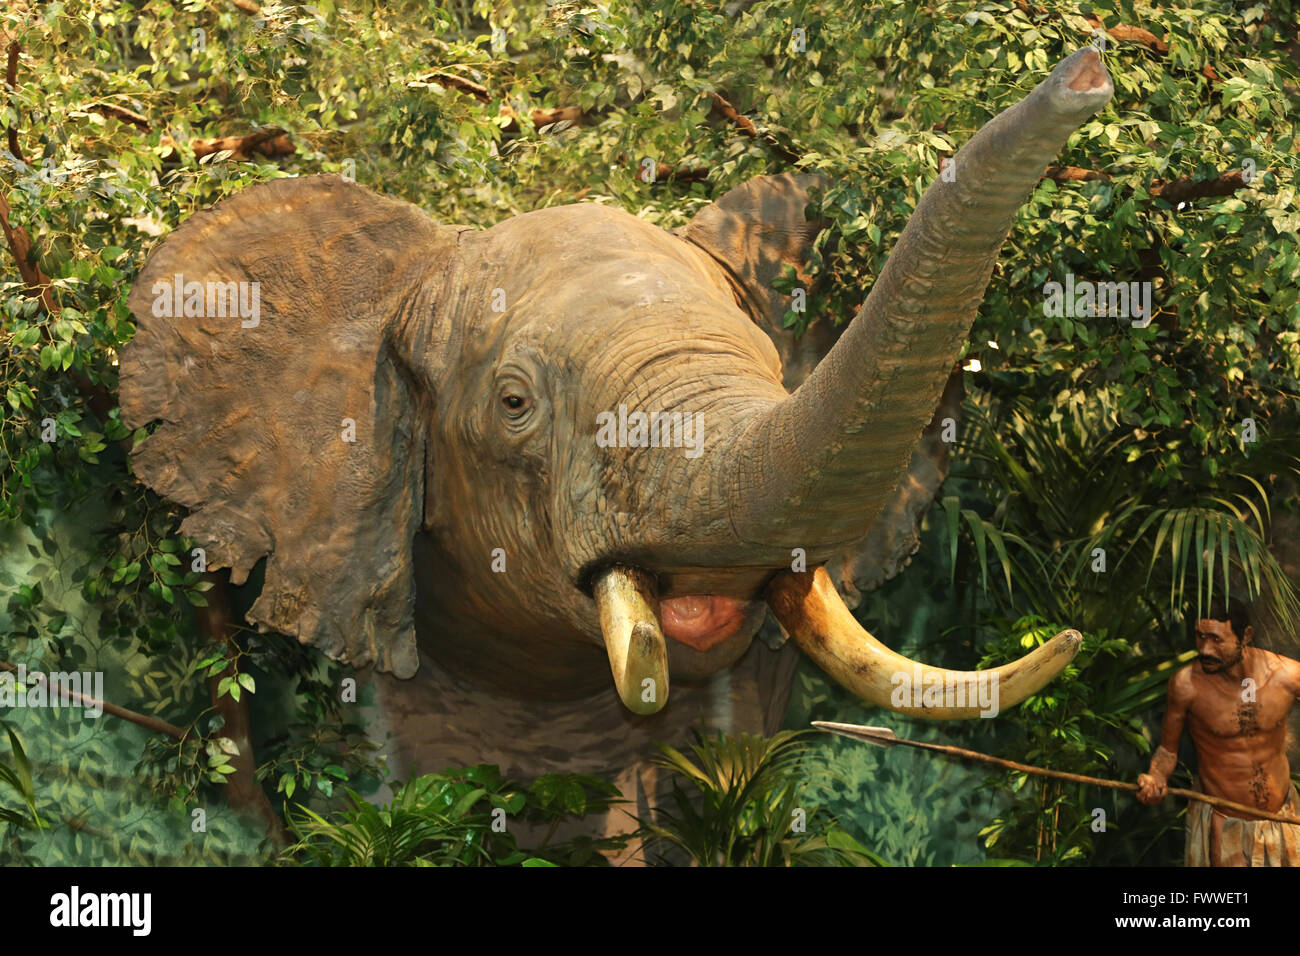 Diorama of african elephant with native hunter - Stock Image